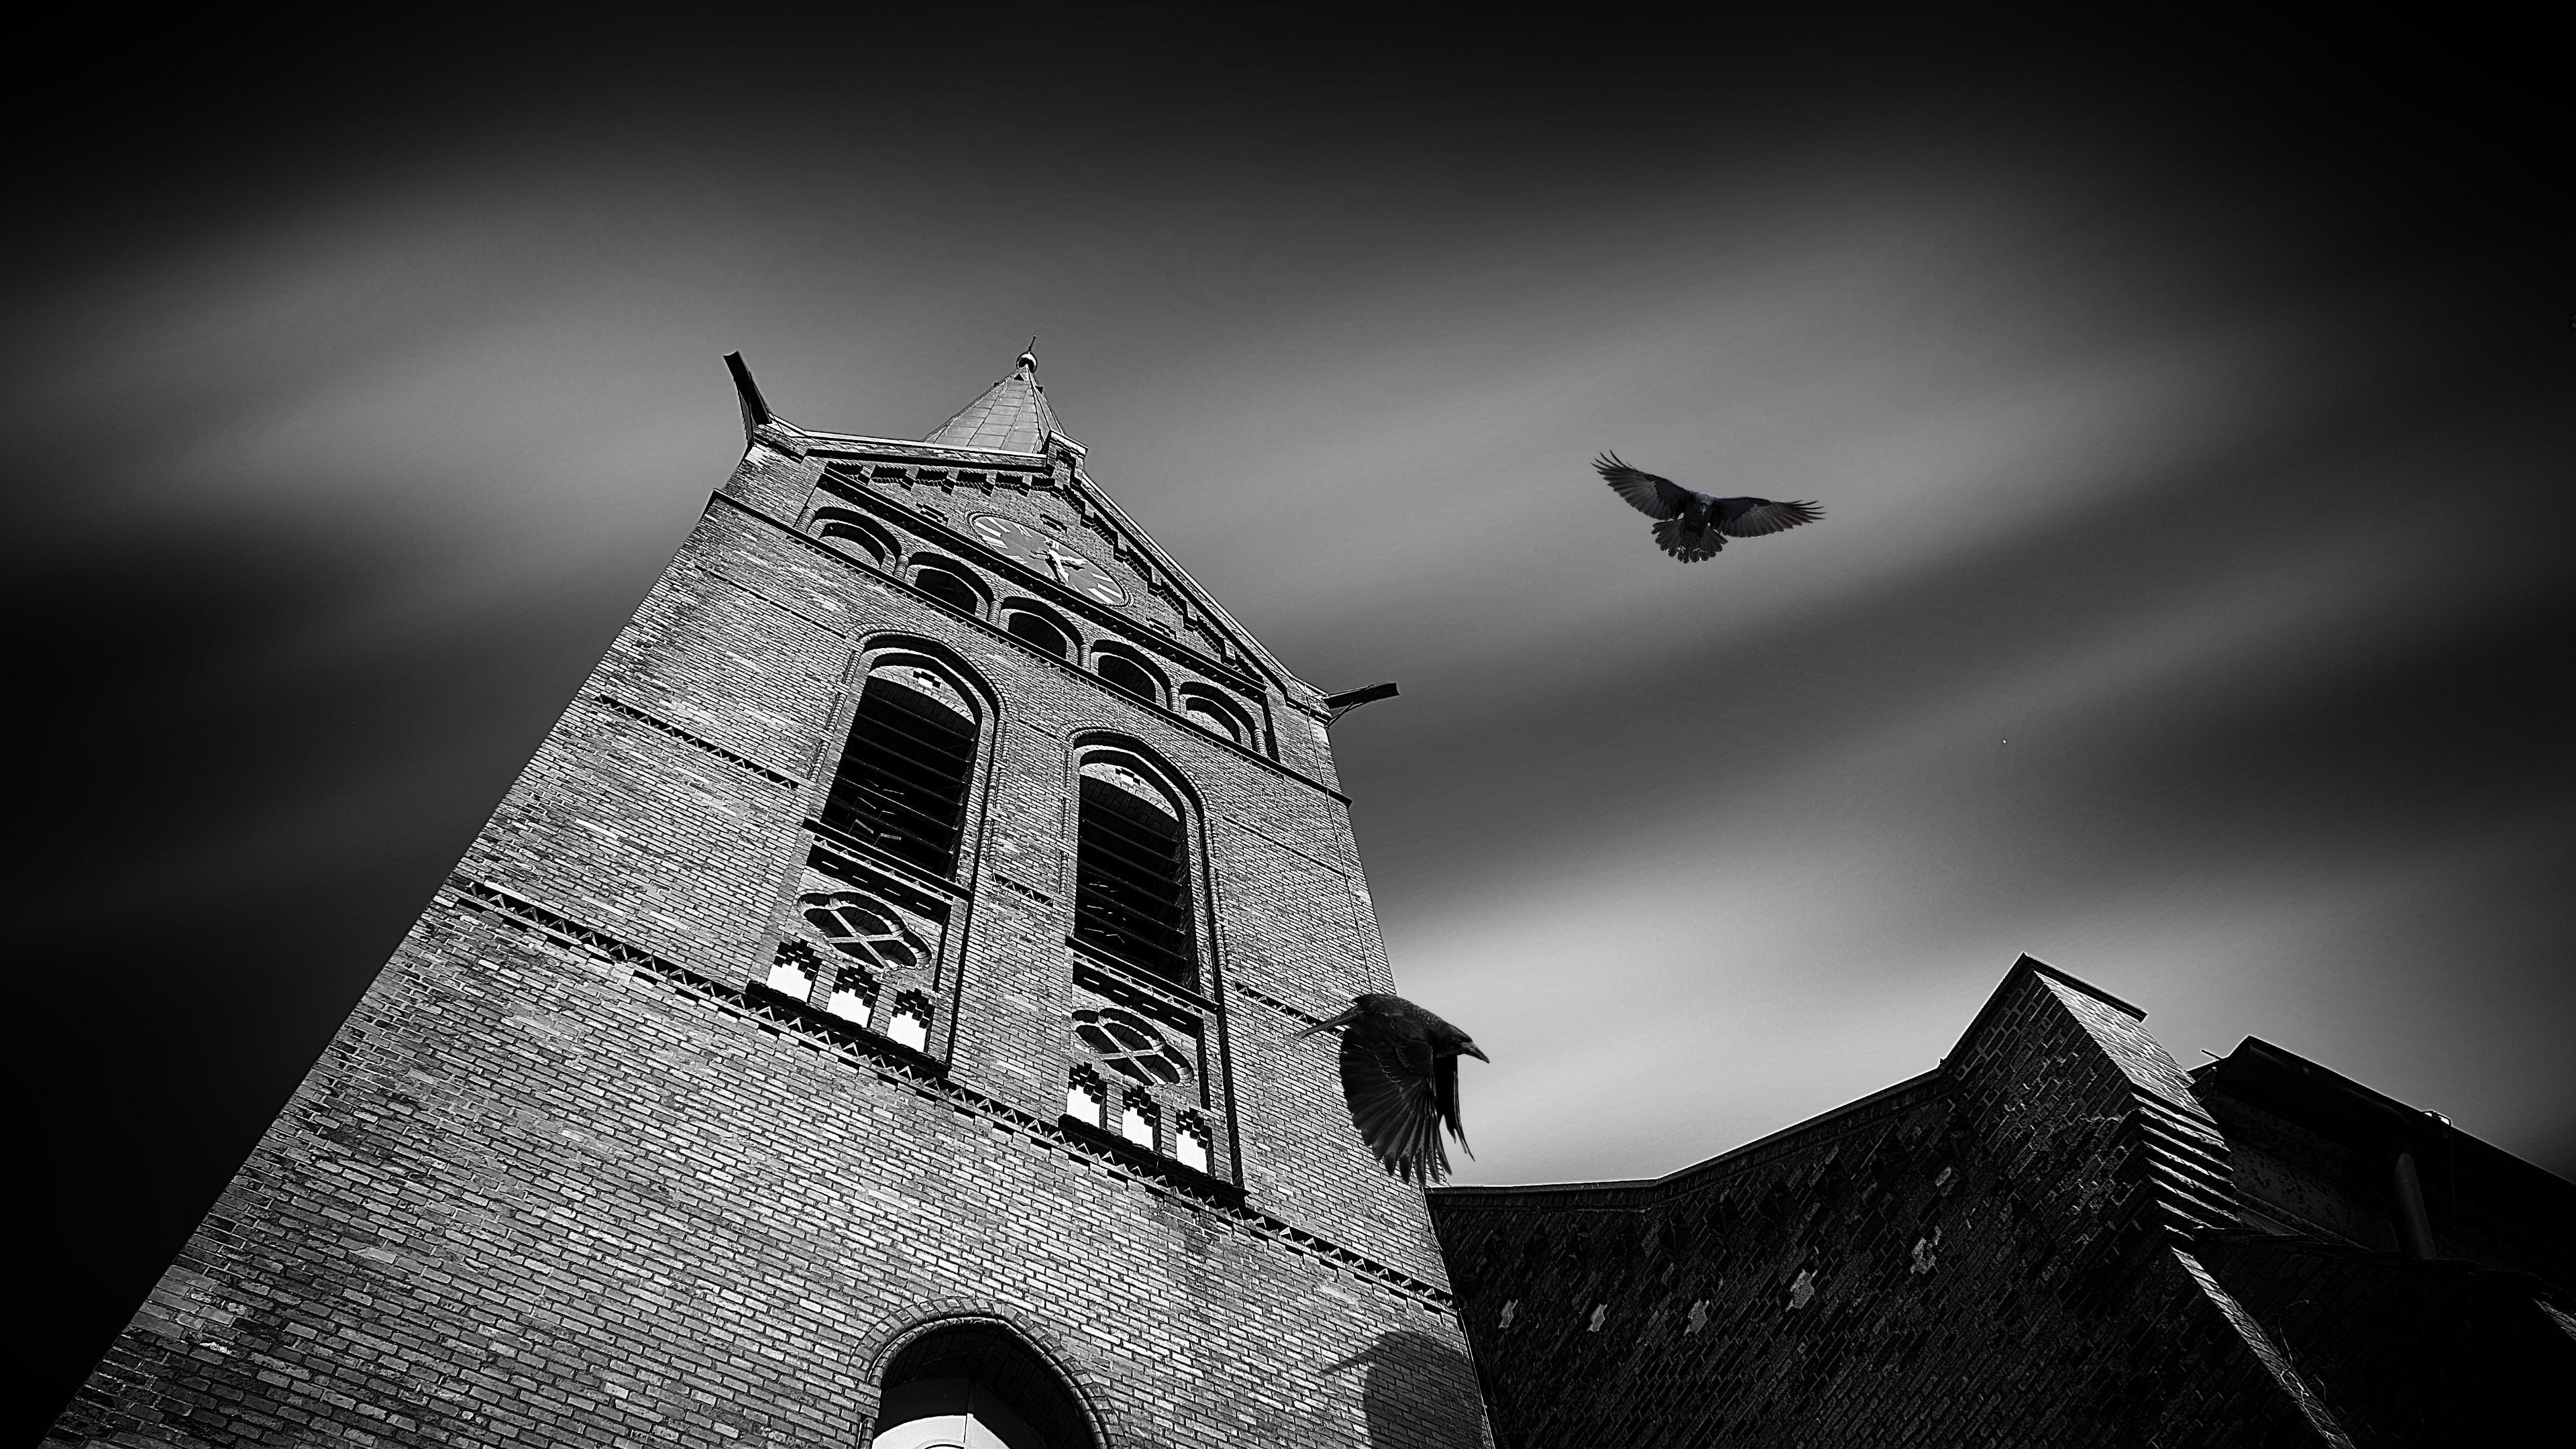 Creepy and haunted tower with ravens wallpaper